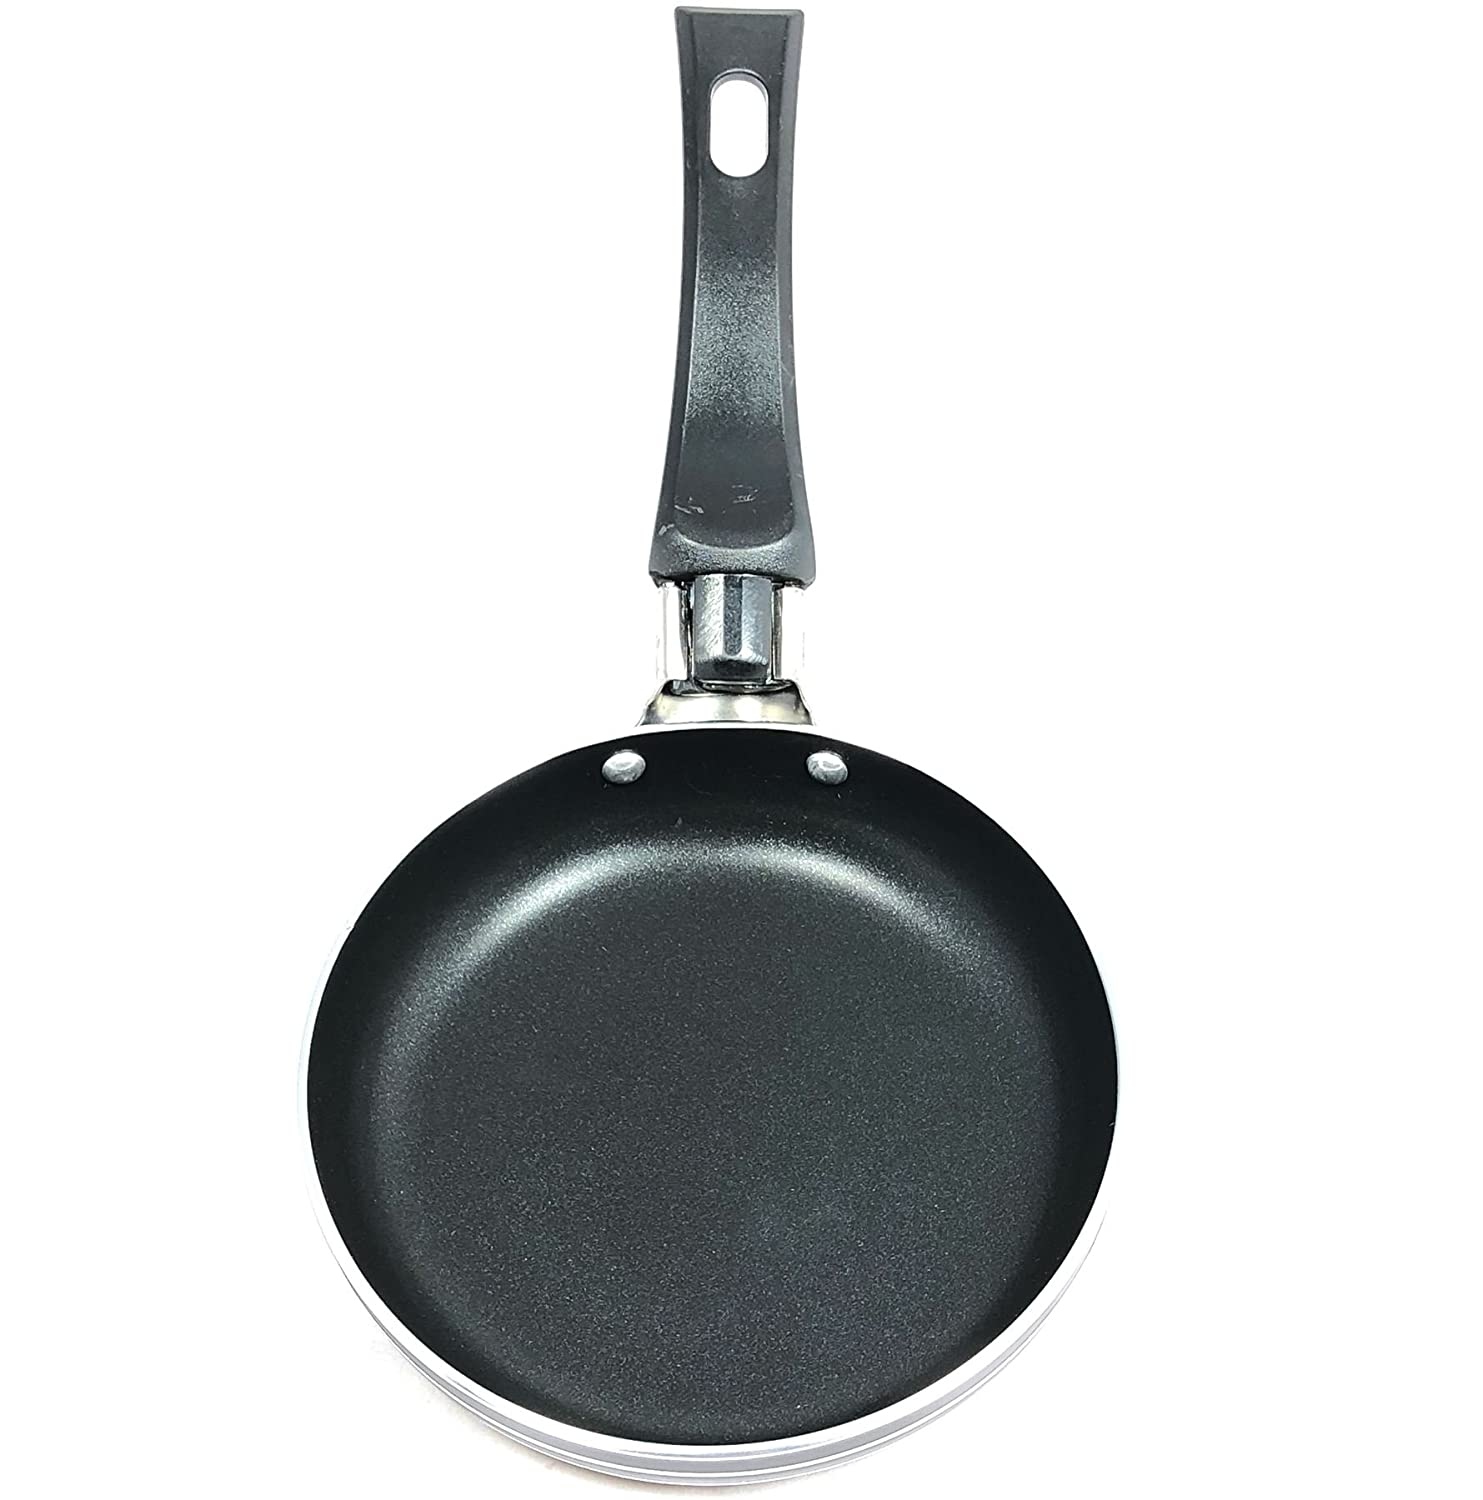 Cookware, Dining & Bar Pots & Pans One Egg Small Mini Frying Pan Frypan Blini Fry Pan Non Stick 12cm By Pendeford